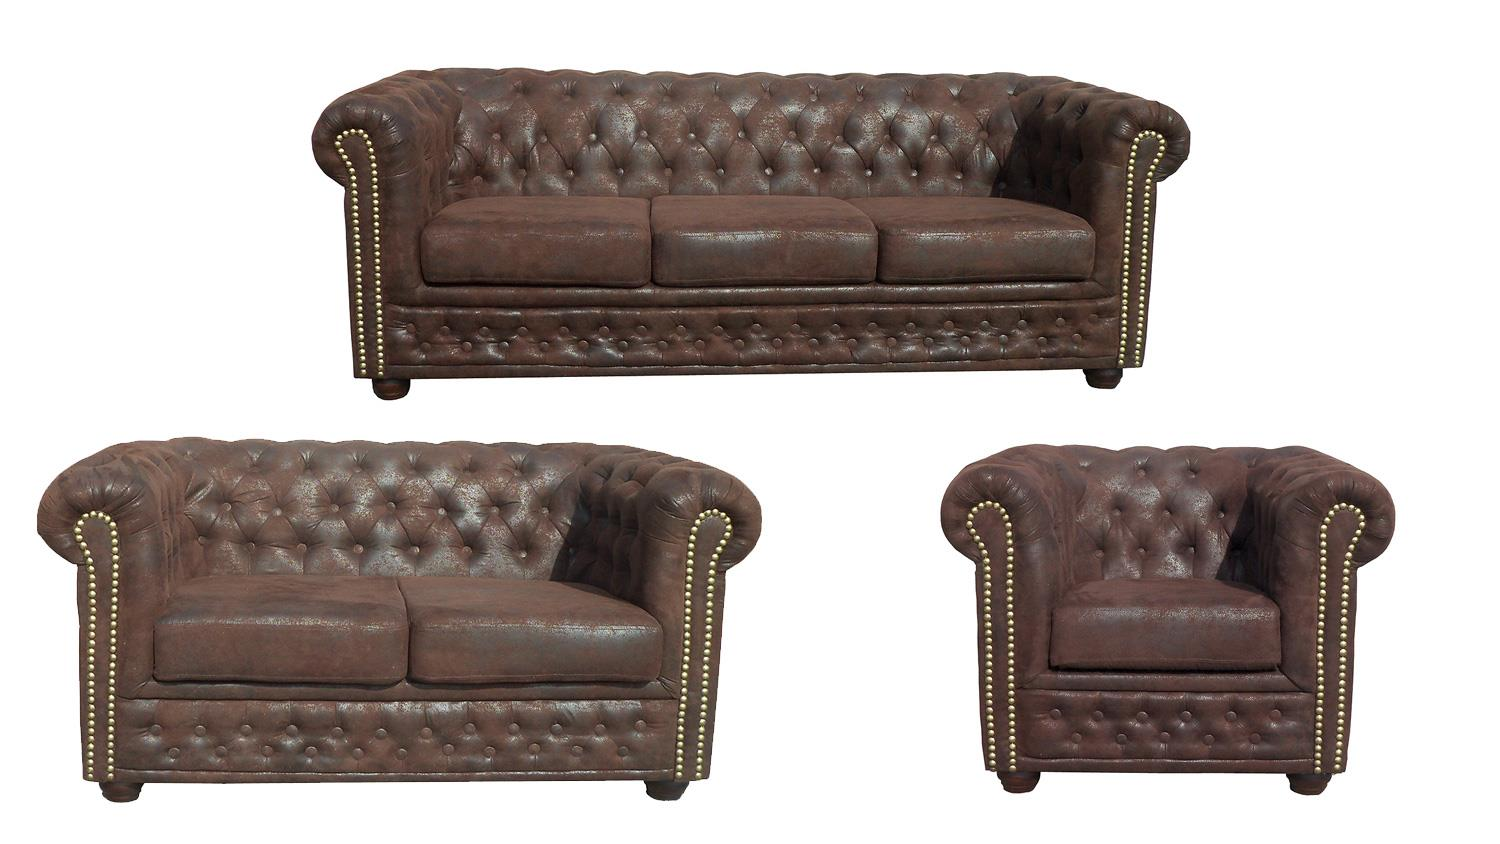 Sessel Für 2 Garnitur 3 2 1 Sheffield Sessel 2 3 Sitzer Sofa Microfaser In Braun